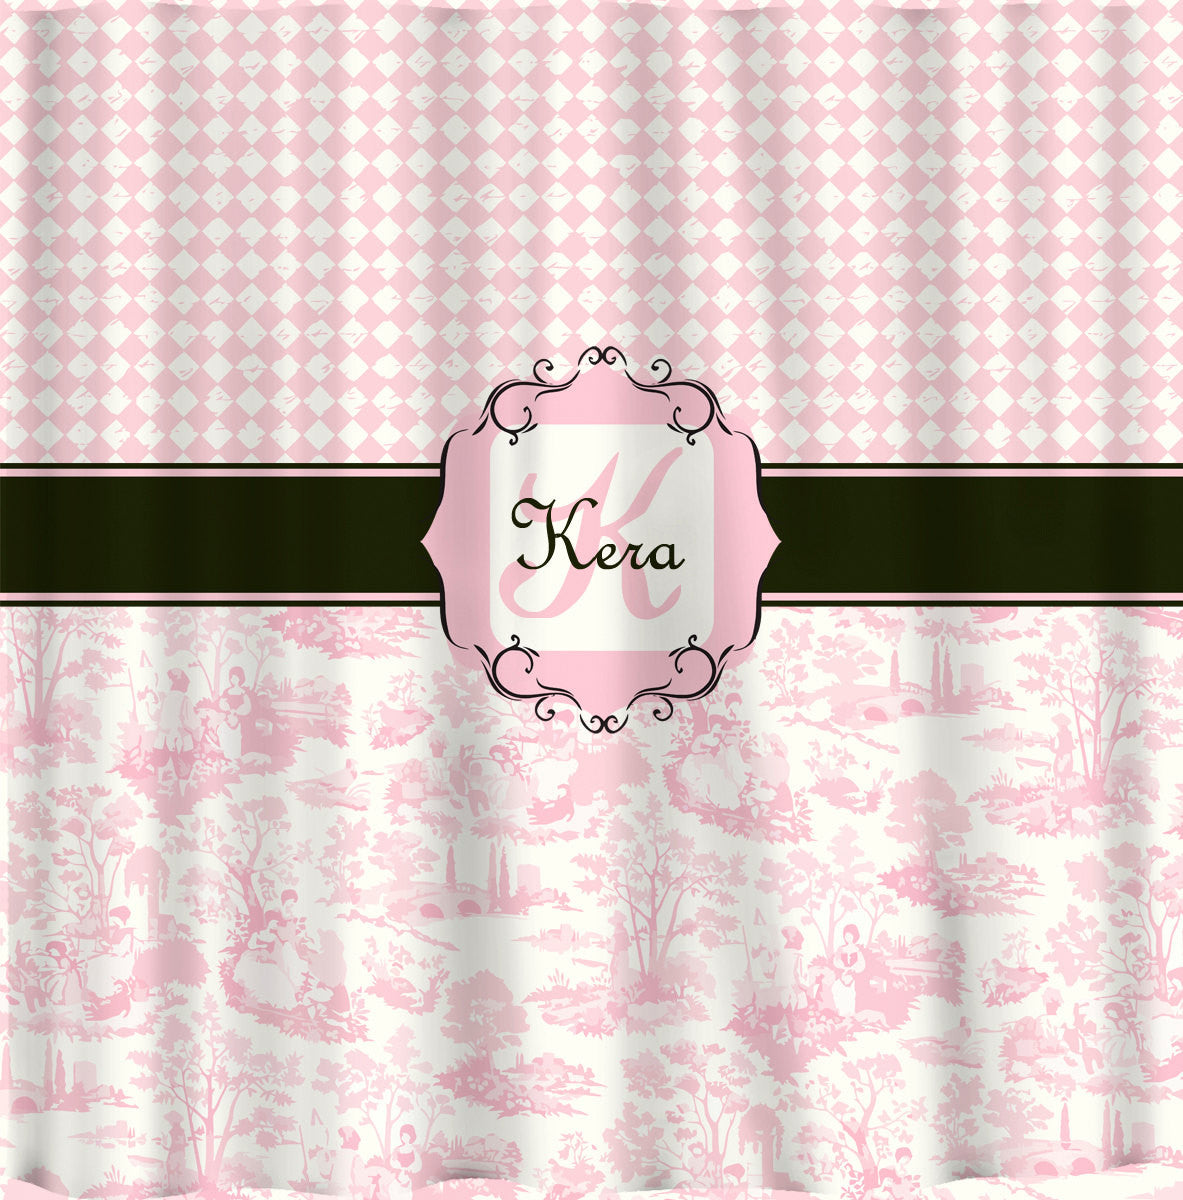 Personalized Shower Curtain Custom With Your Name Or Initials Diamonds And Pink Toile Combo